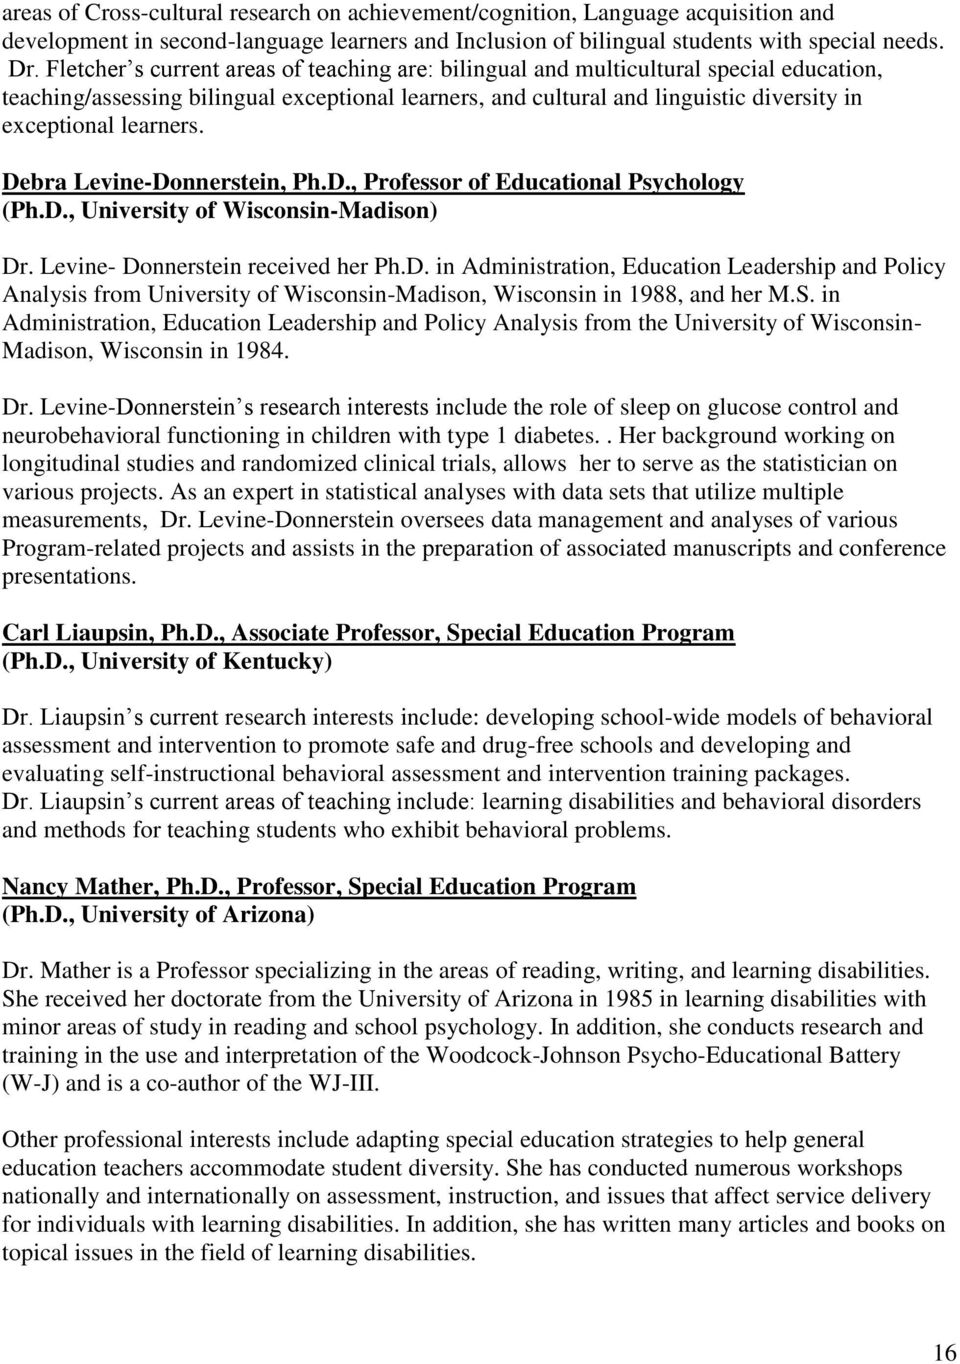 learners. Debra Levine-Donnerstein, Ph.D., Professor of Educational Psychology (Ph.D., University of Wisconsin-Madison) Dr. Levine- Donnerstein received her Ph.D. in Administration, Education Leadership and Policy Analysis from University of Wisconsin-Madison, Wisconsin in 1988, and her M.